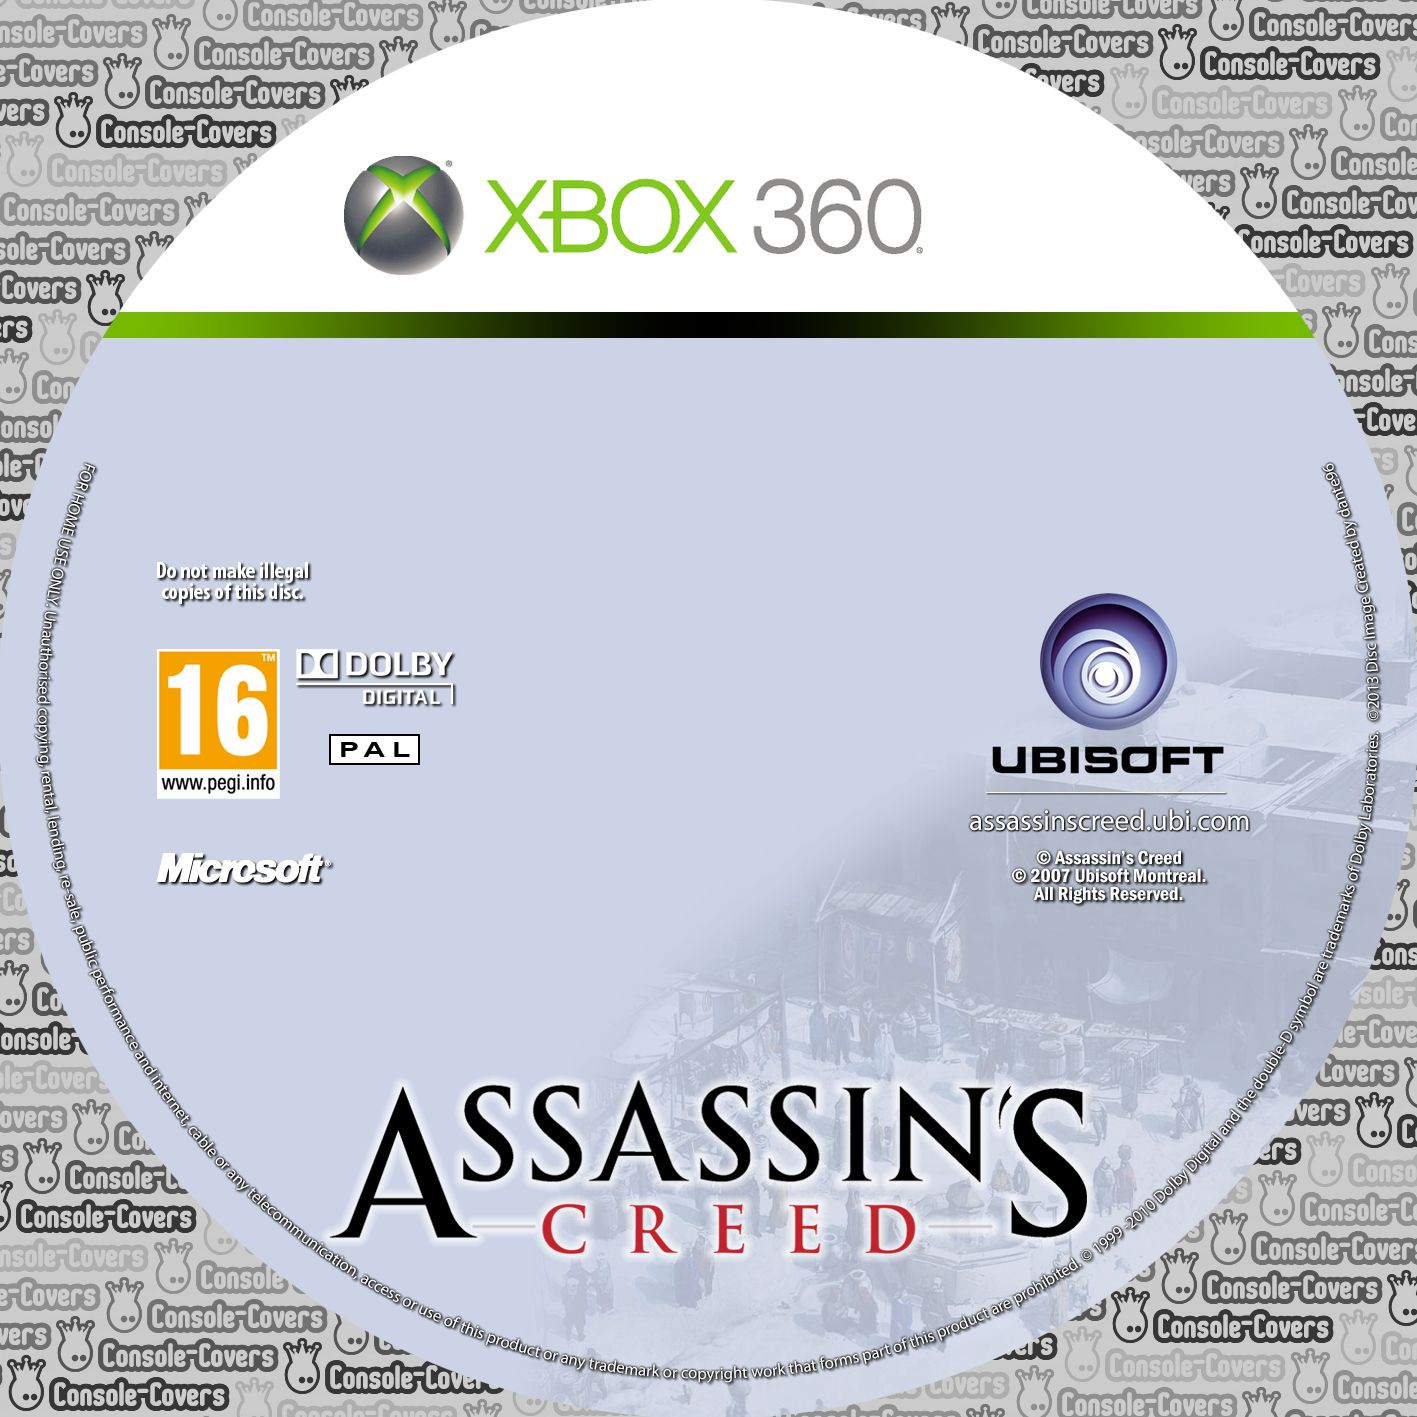 Label Assassins Creed Xbox 360